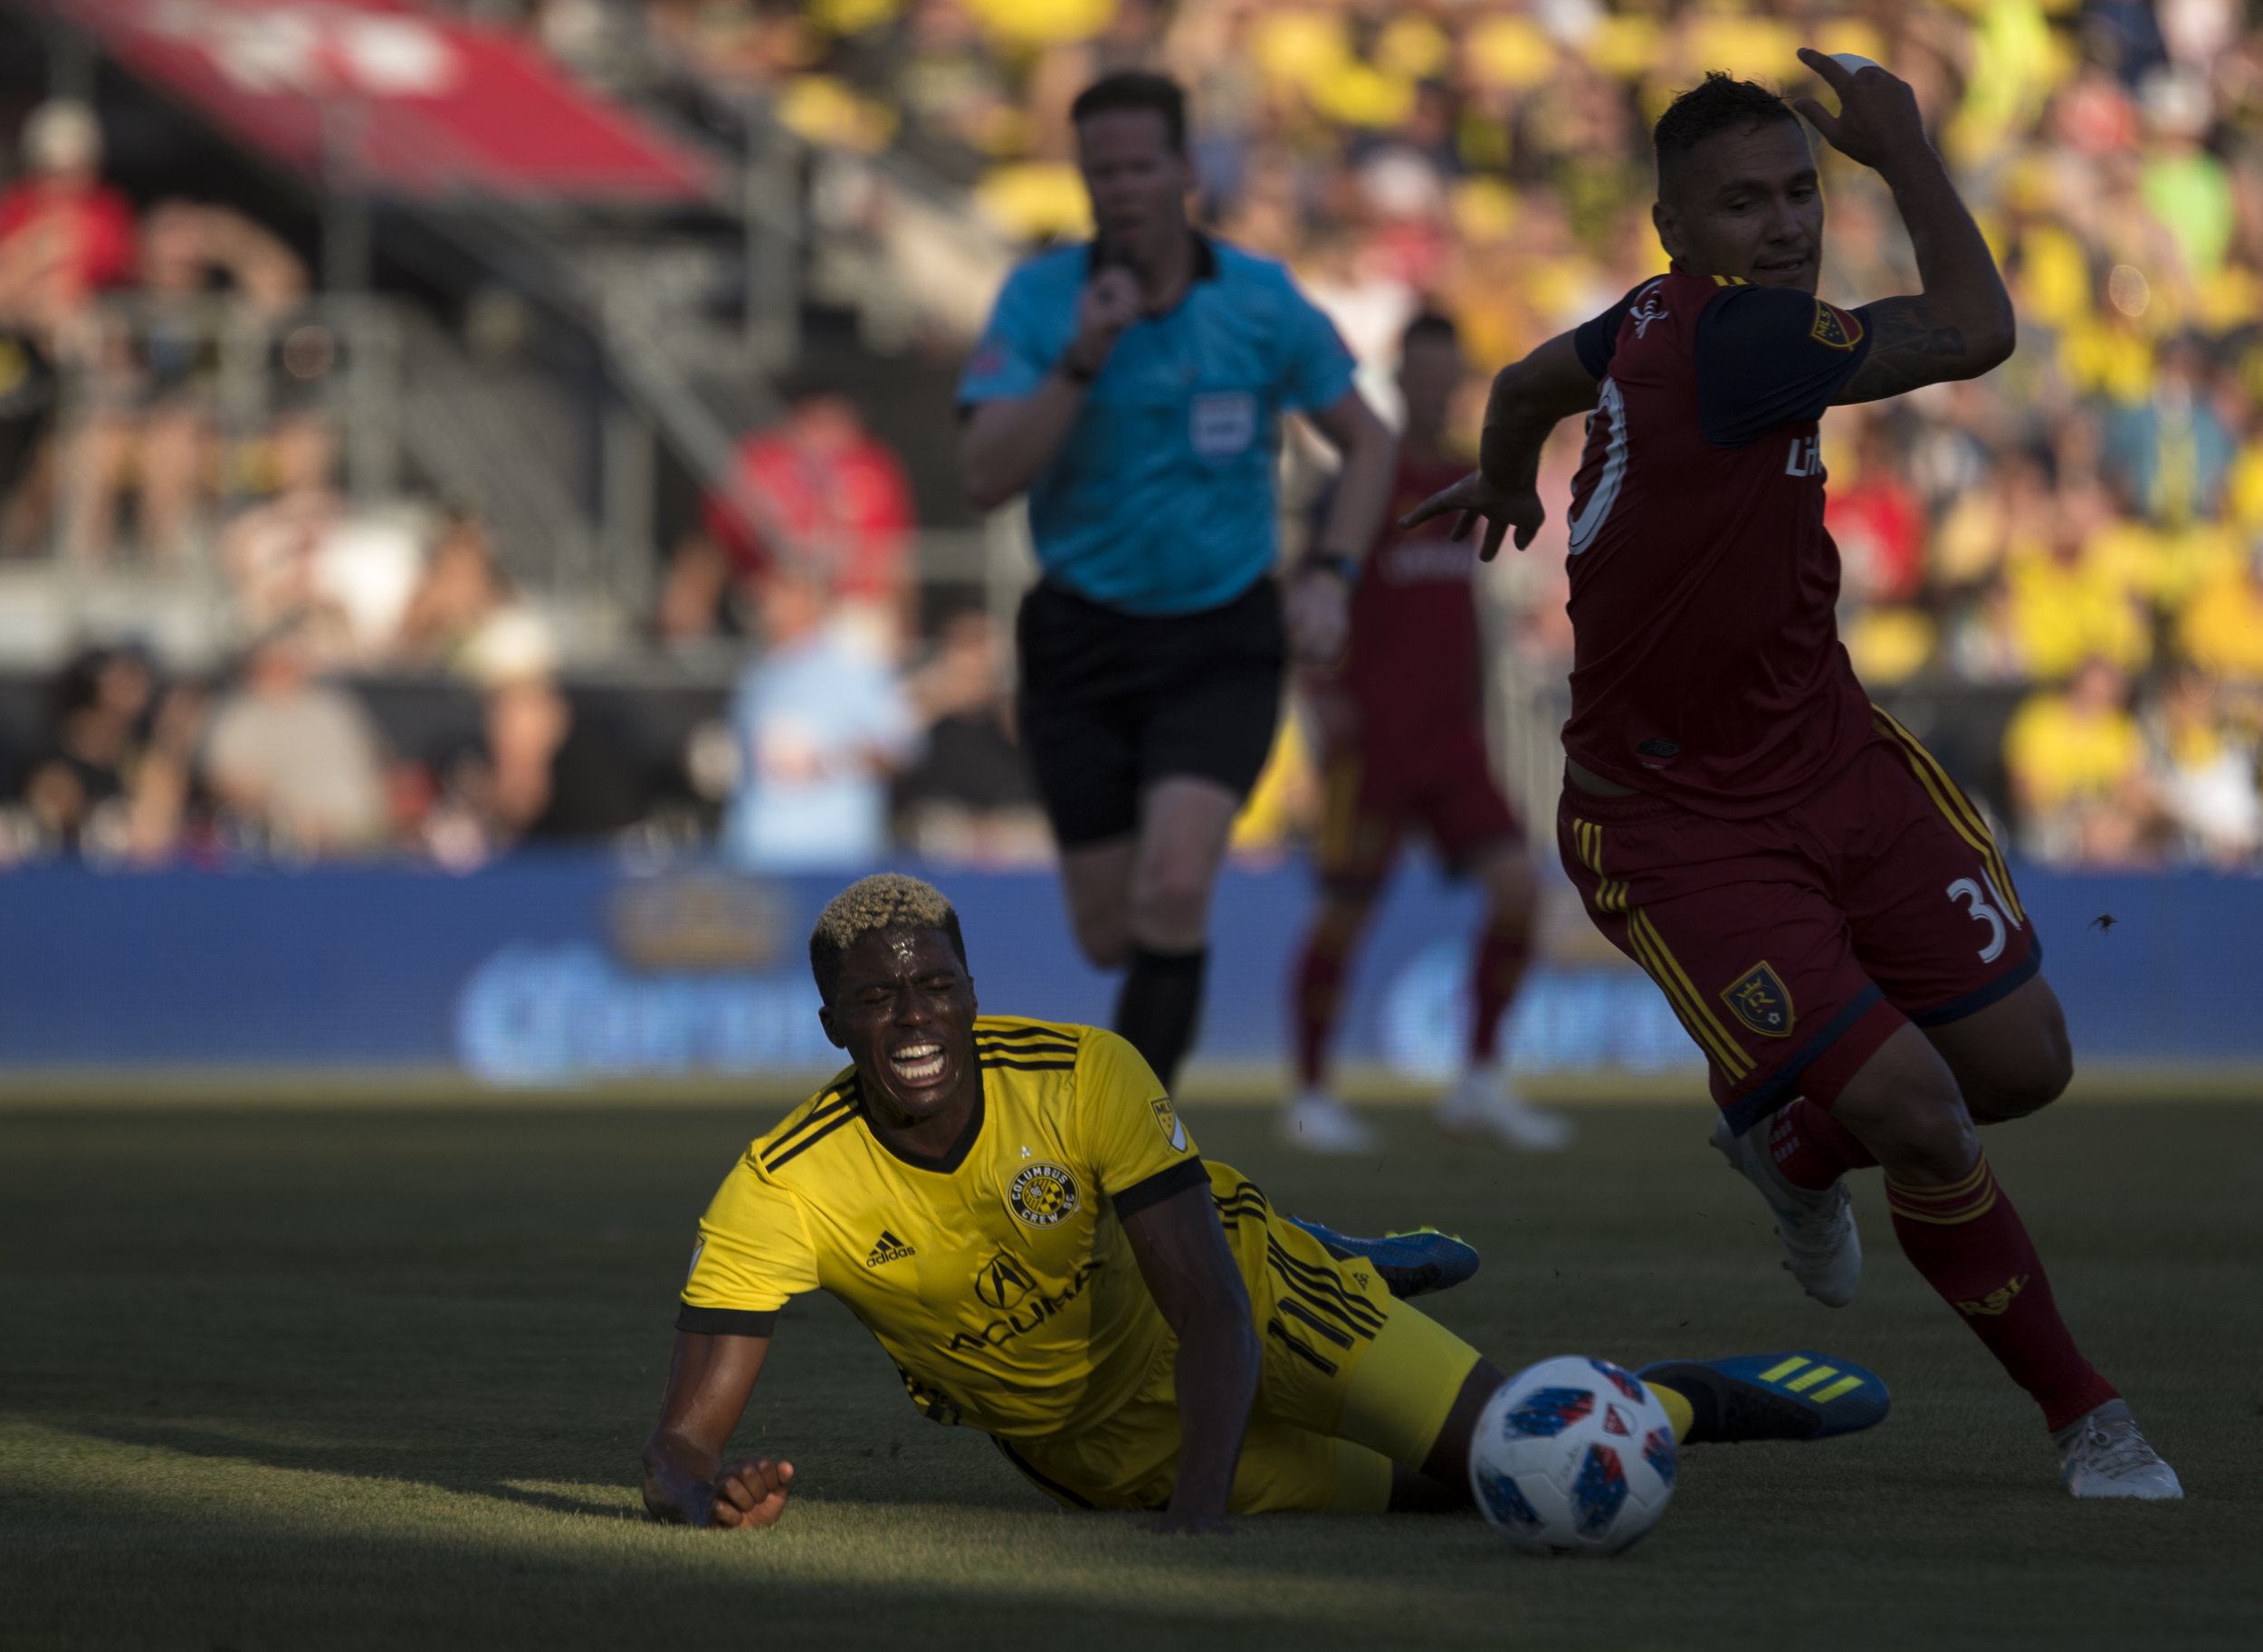 Columbus Crew forward Gyasi Zardes (left) is tripped by Real Salt Lake's Marcelo Silva (right) during the game against Salt Lake City on June 30, 2018.